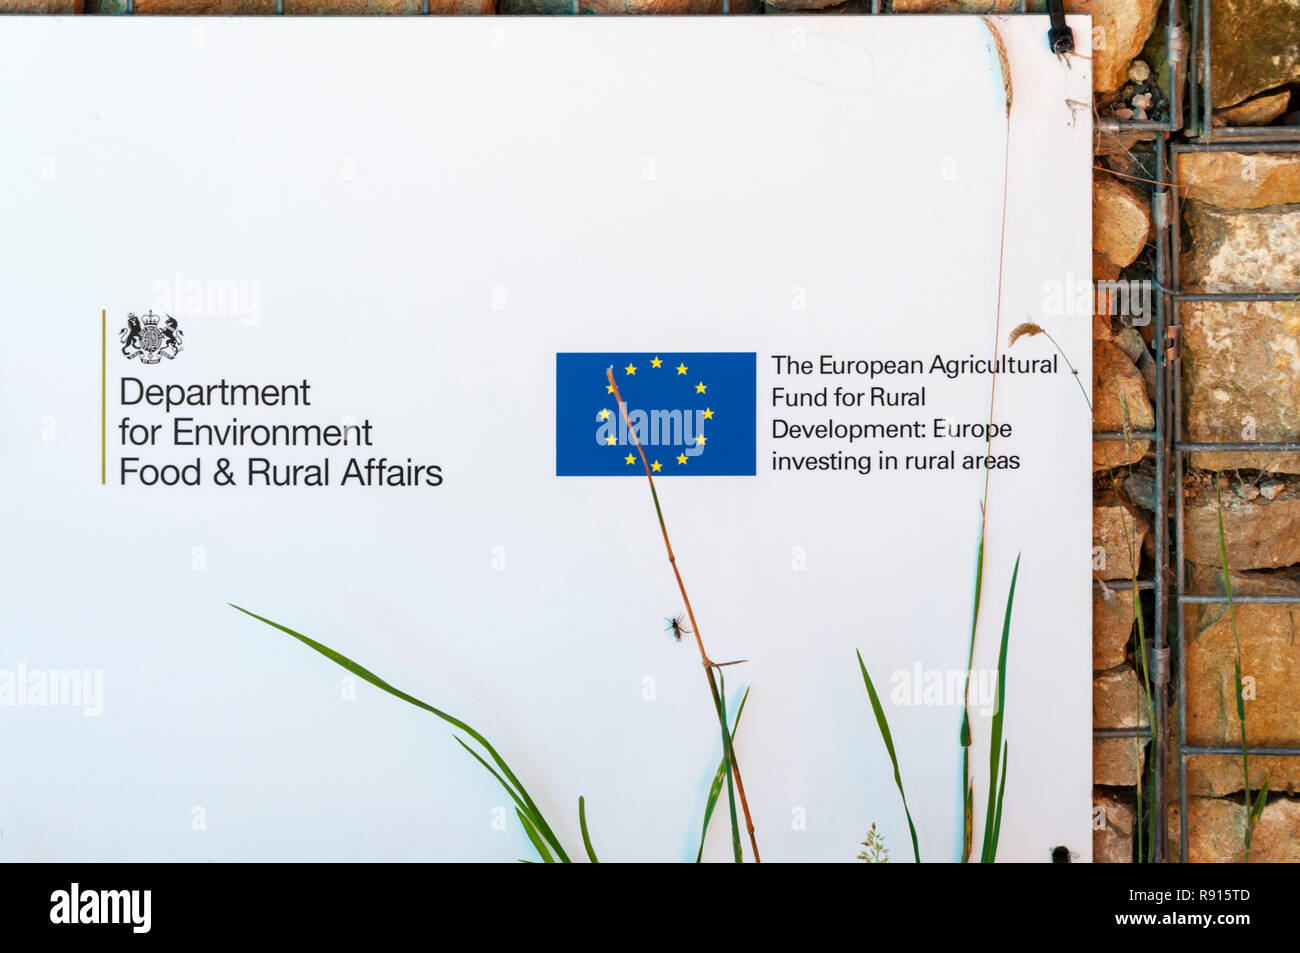 A sign at Bempton Cliffs acknowledges aid from The European Agricultural Fund for Rural Development. - Stock Image